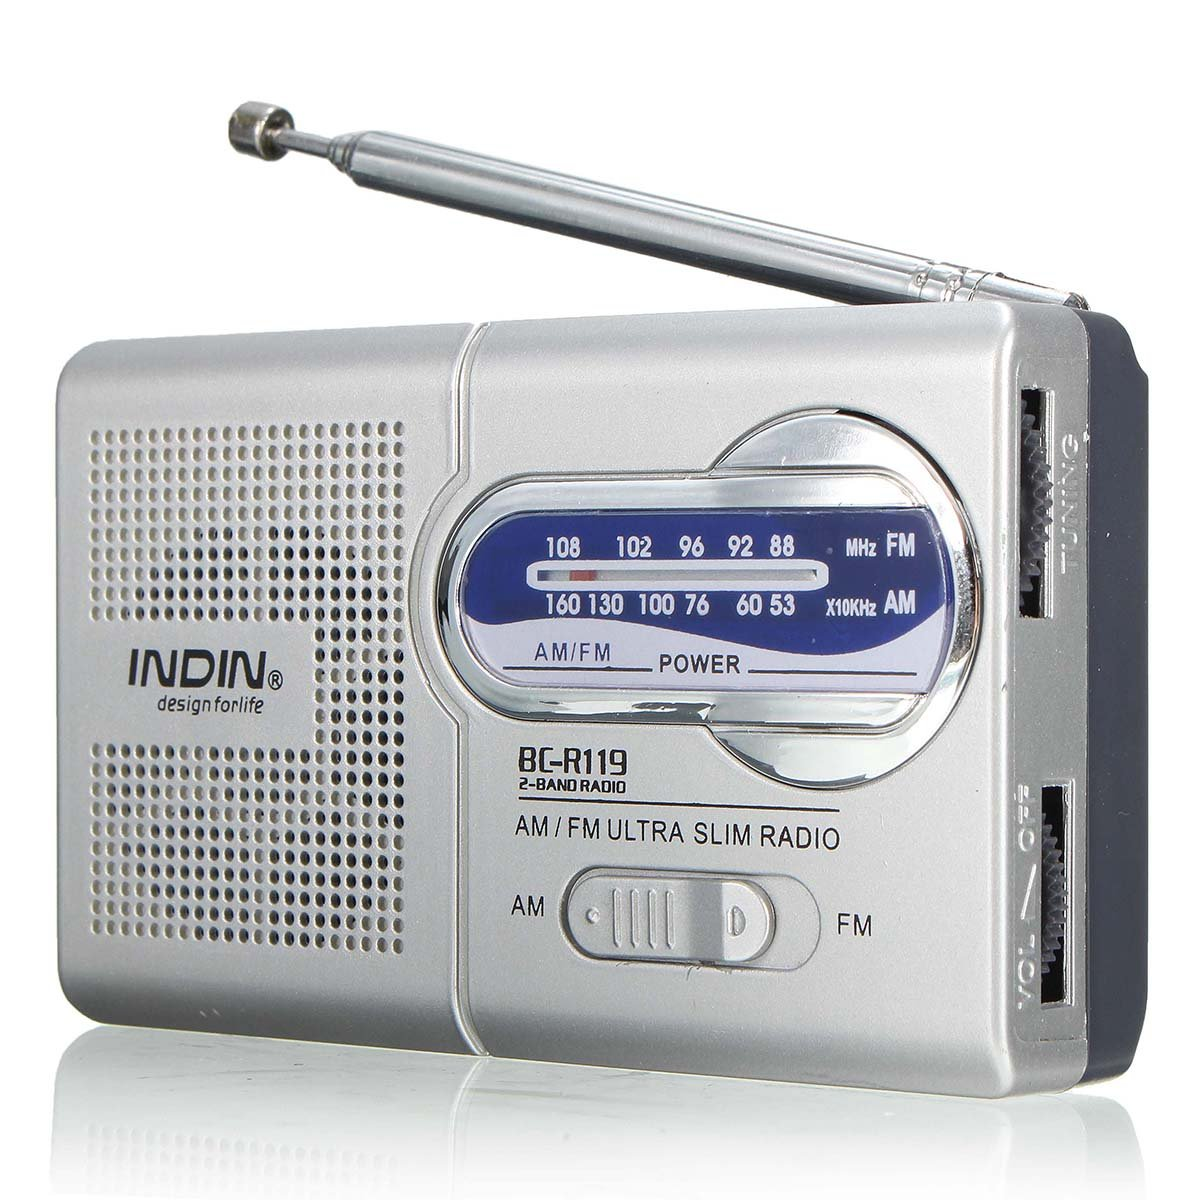 QOJA indin bc-r119 am/fm portable pocket radio receiver telescopic